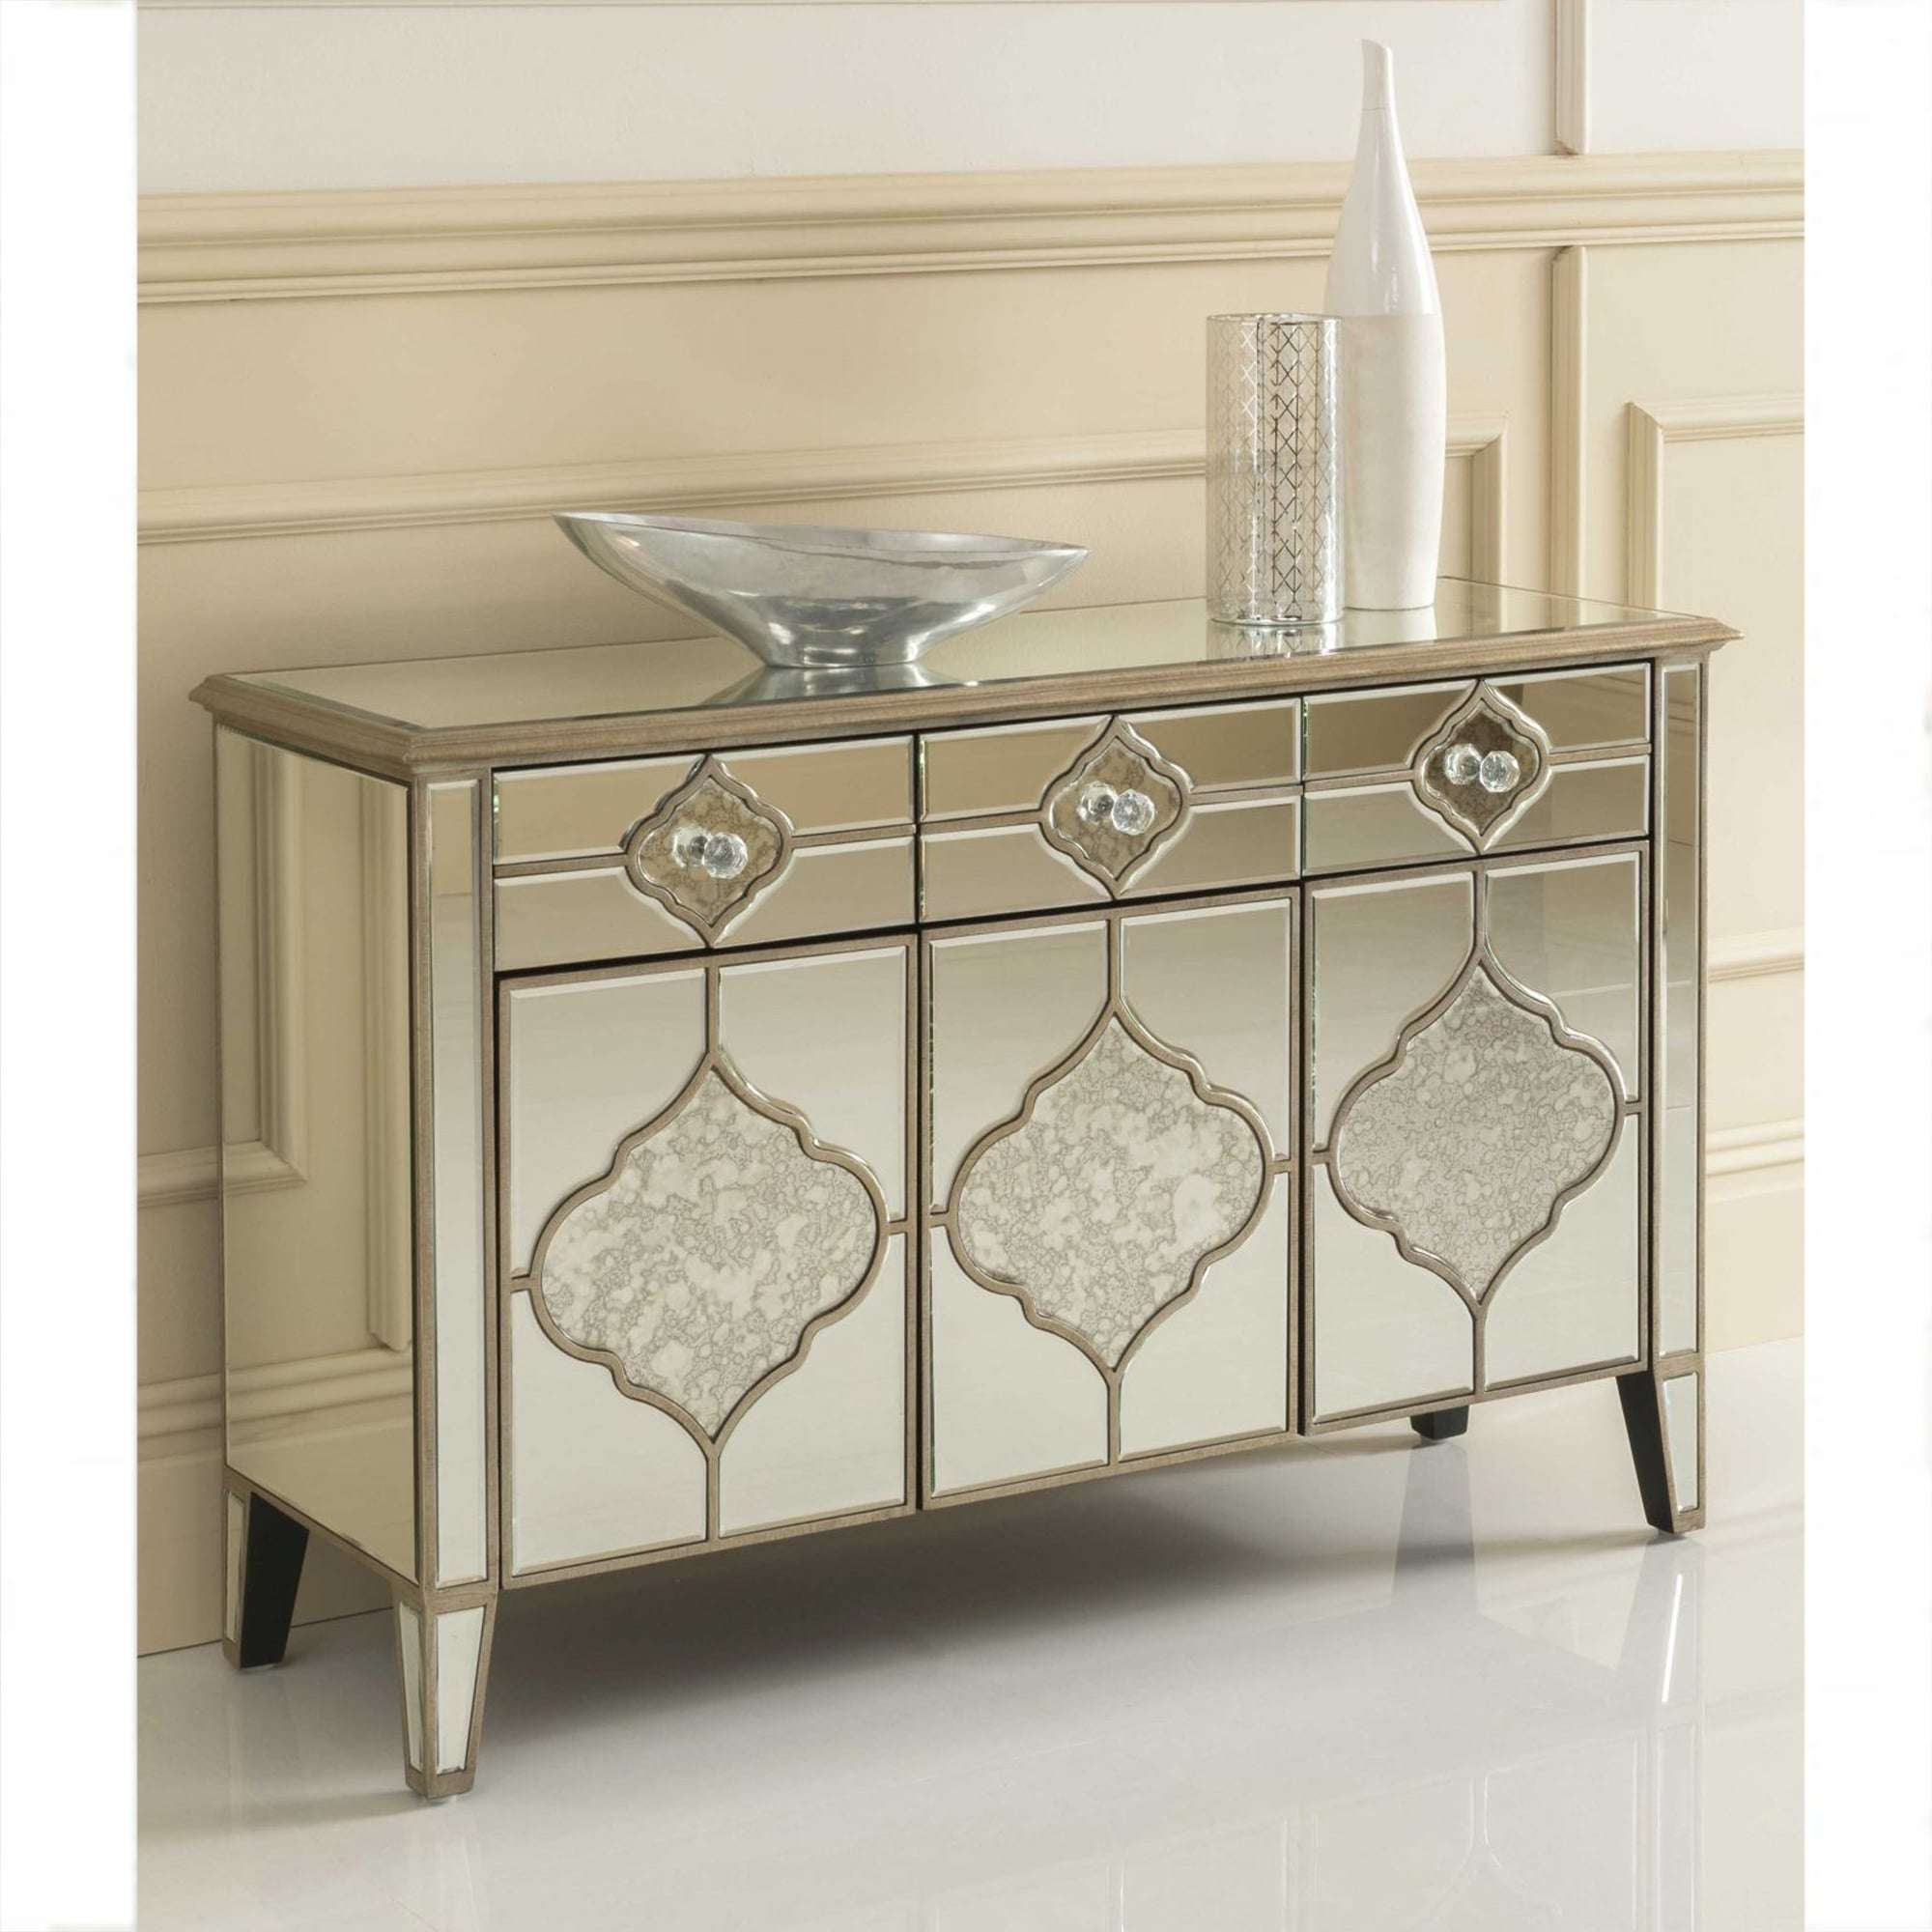 Sassari Mirrored Sideboard | Venetian Glass Furniture Inside Glass Sideboards (View 15 of 20)